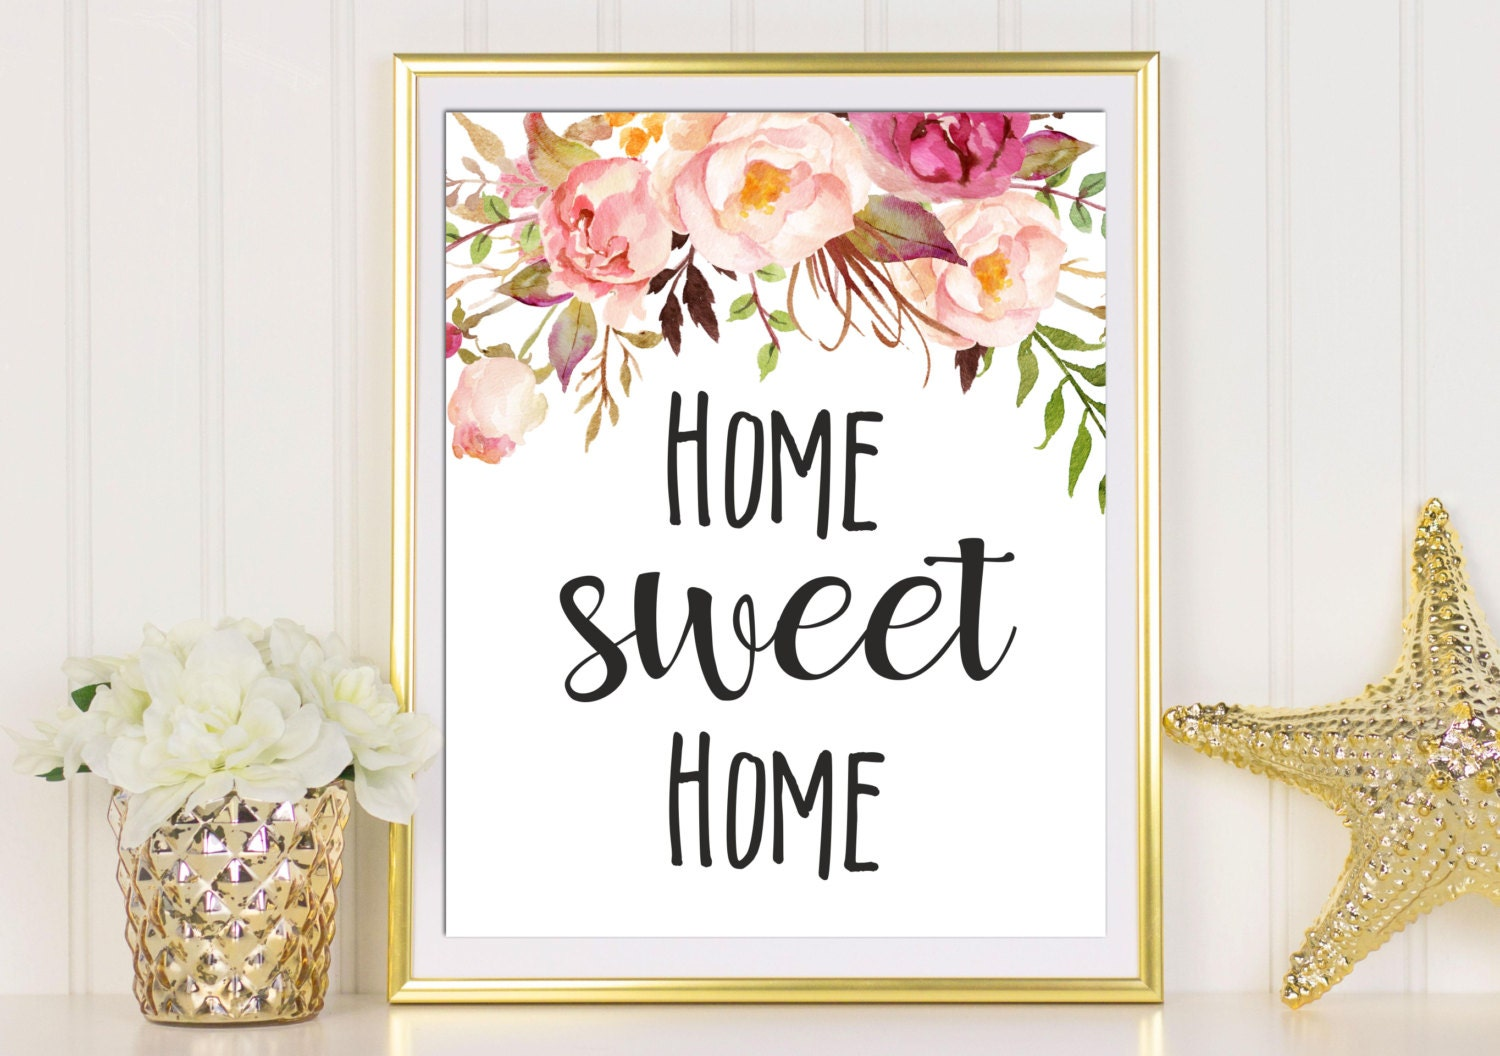 Home sweet home print printable wall art guest room decor Home decor wall decor australia